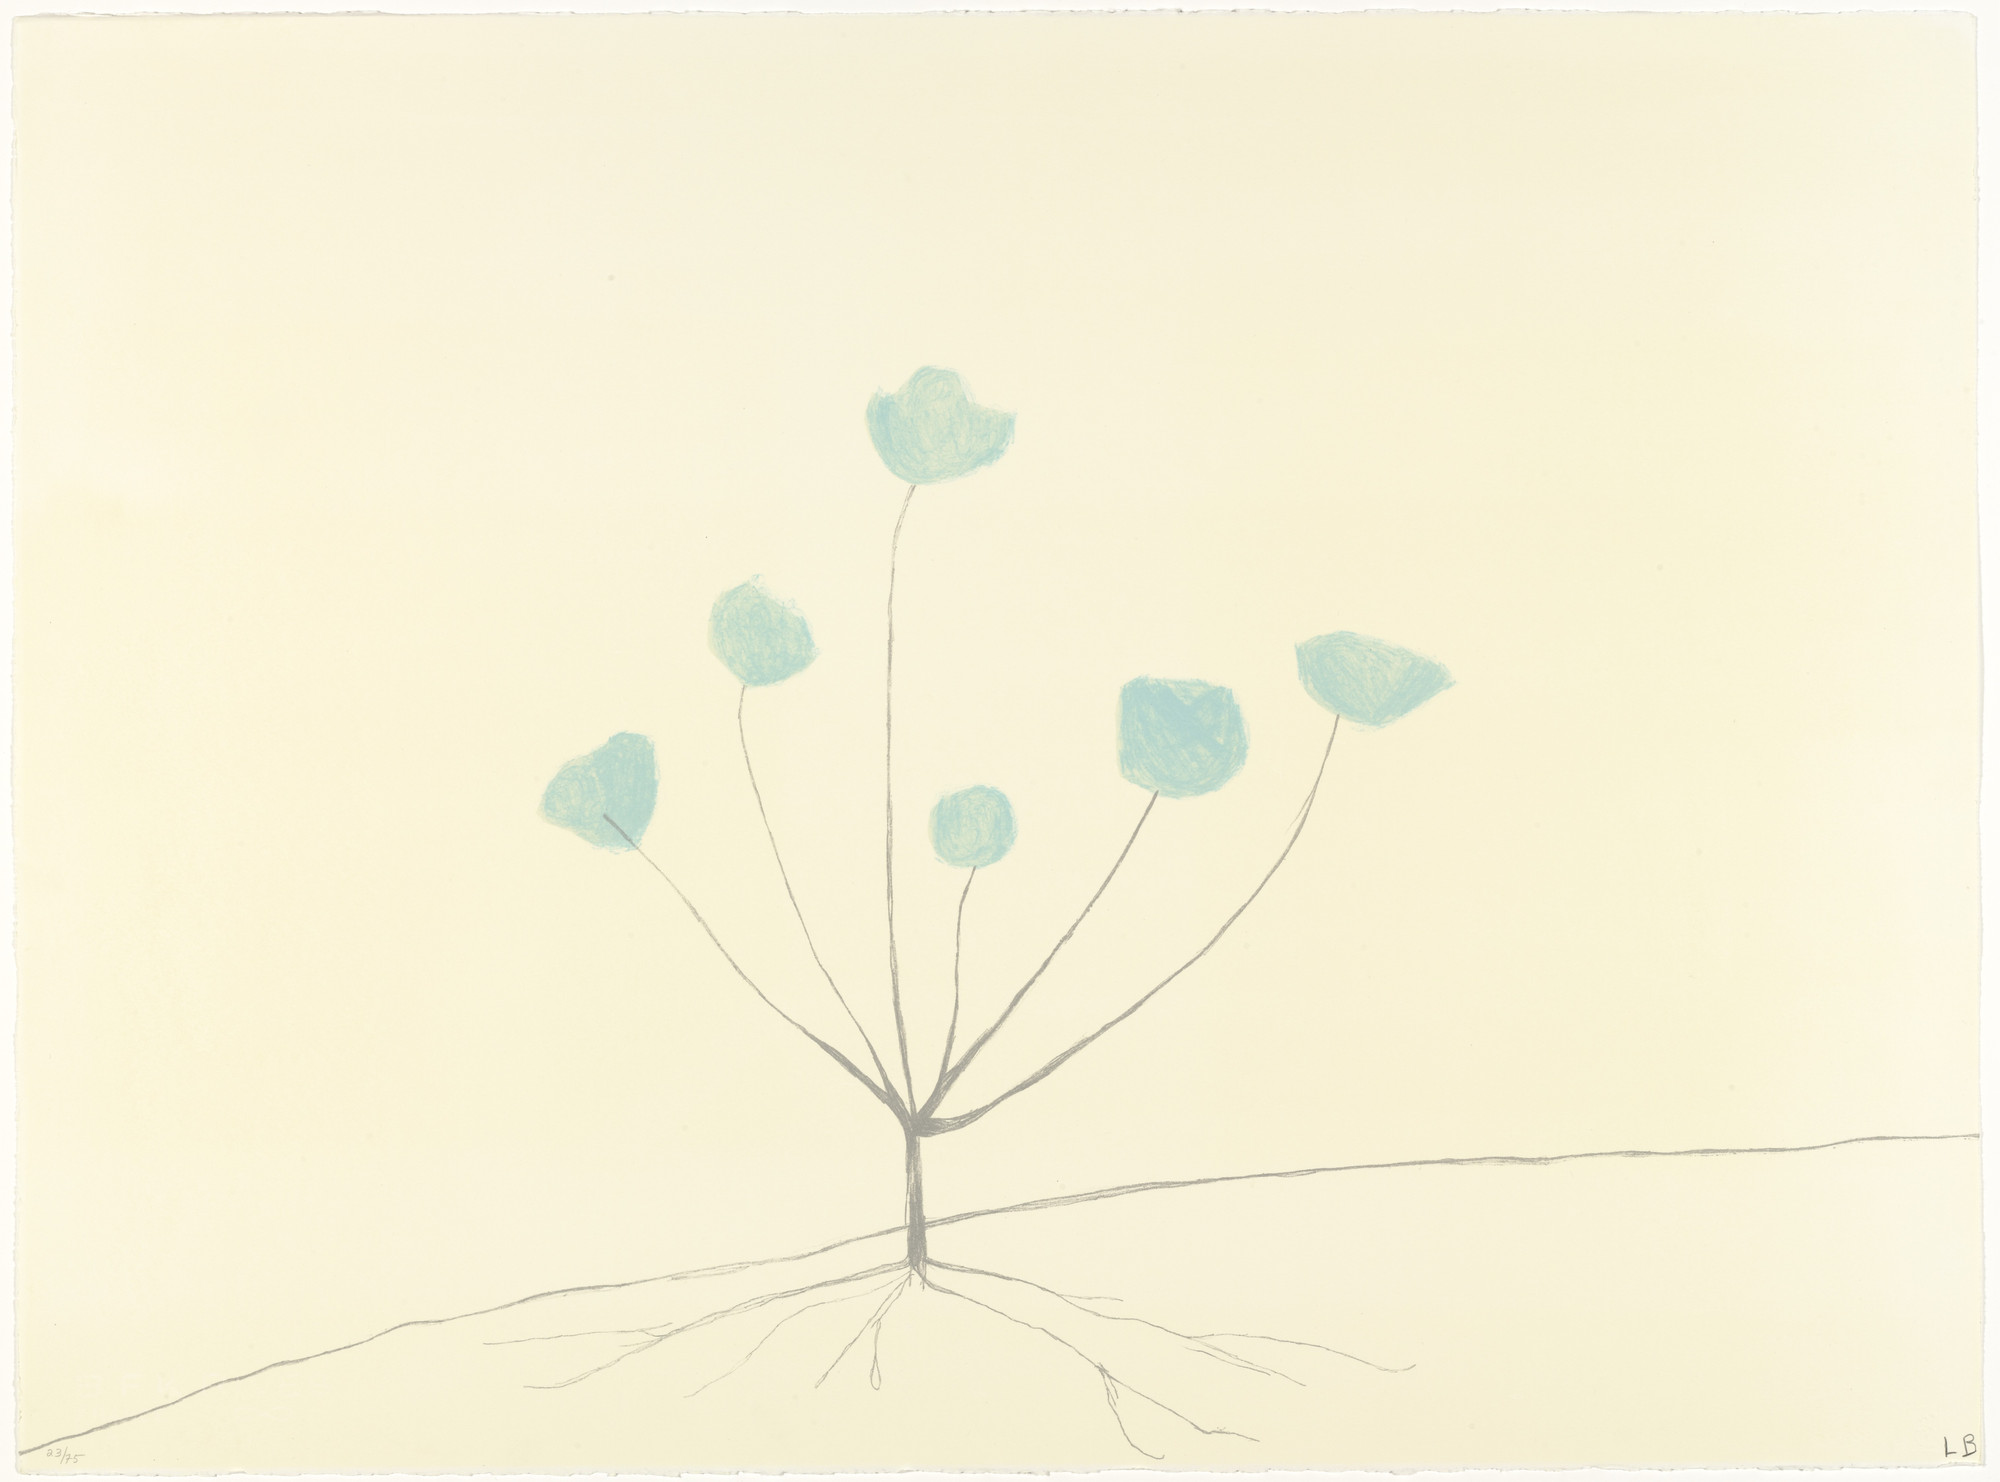 Louise Bourgeois. A Flower In the Forest, from the portfolio by various artists, The Geldzahler Portfolio. 1998